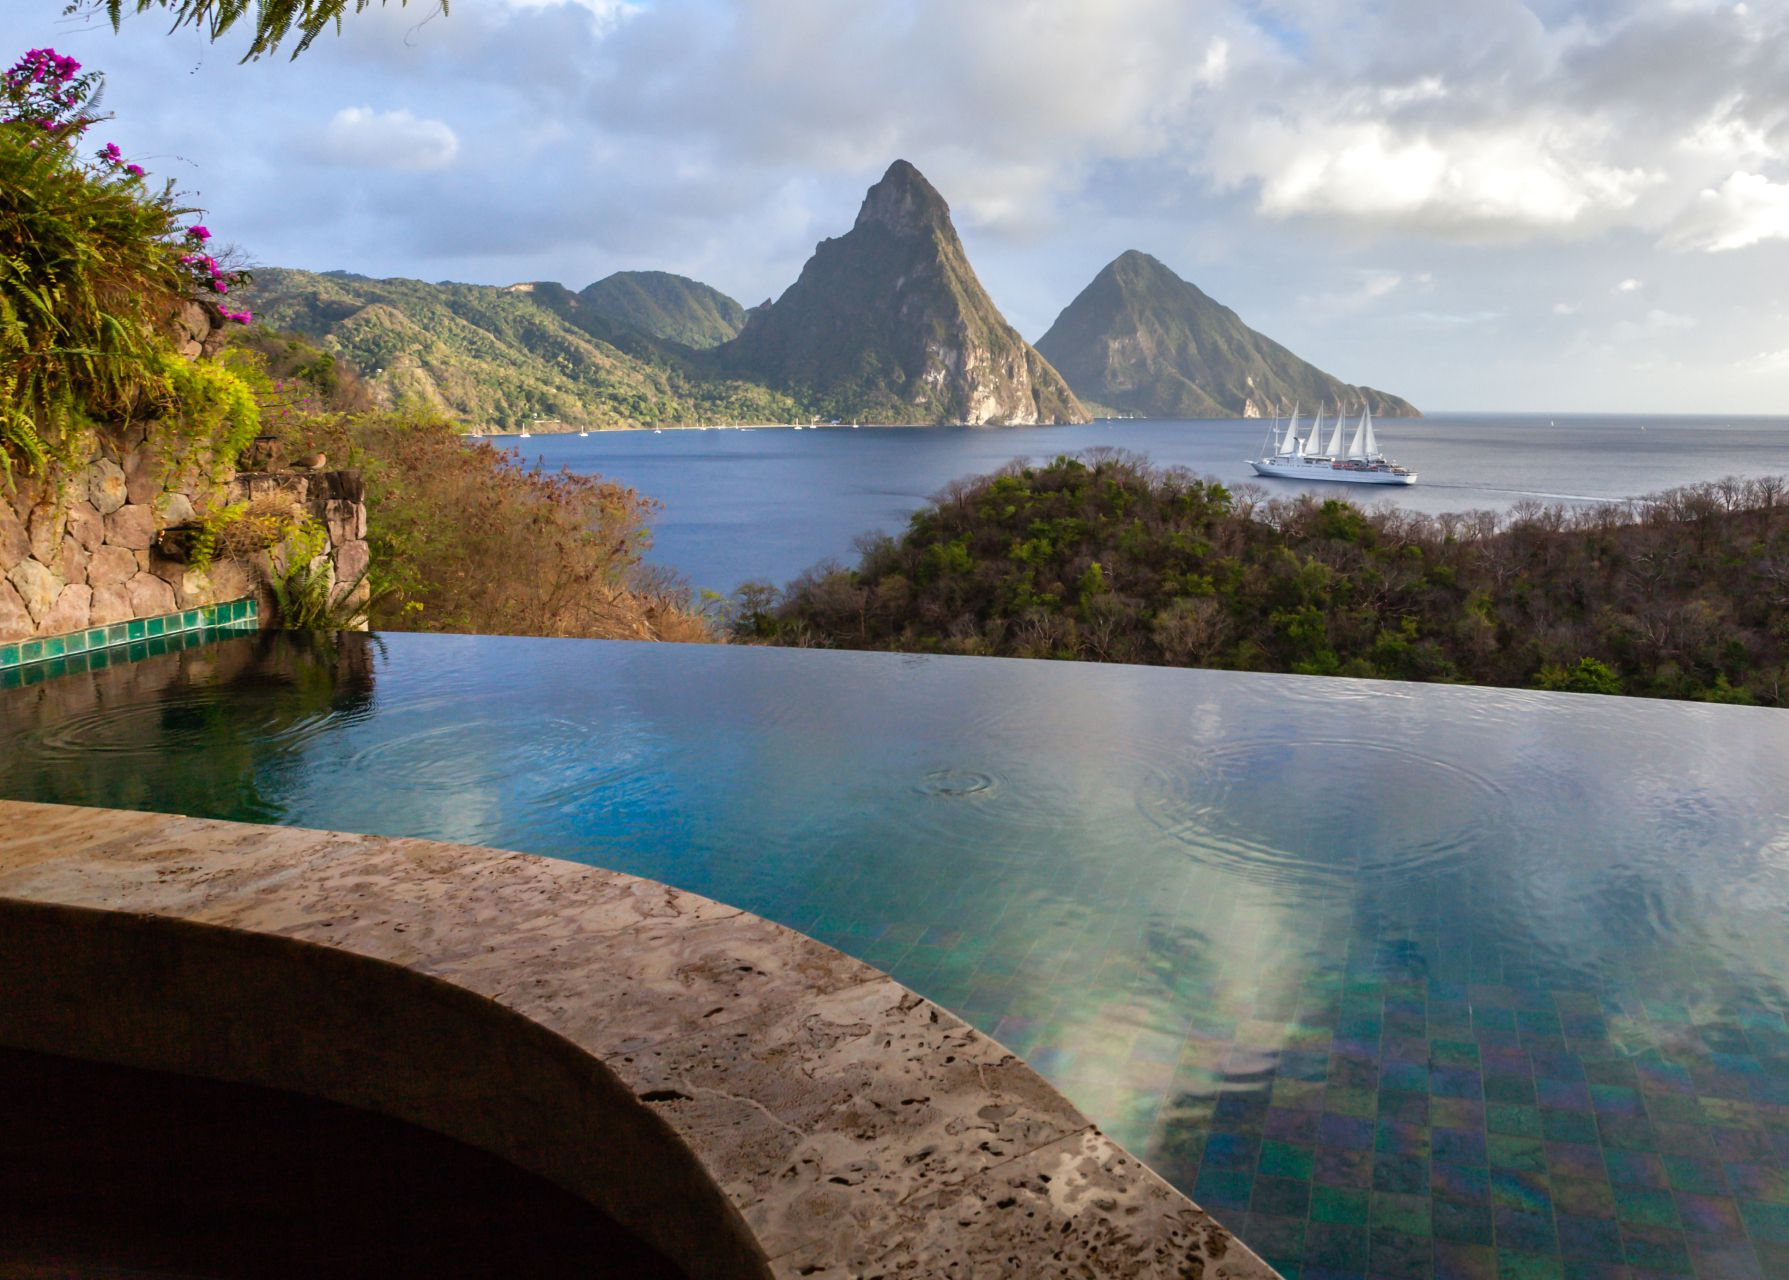 Rooms: St. Lucia's Anse Chastanet & Jade Mountain Resorts